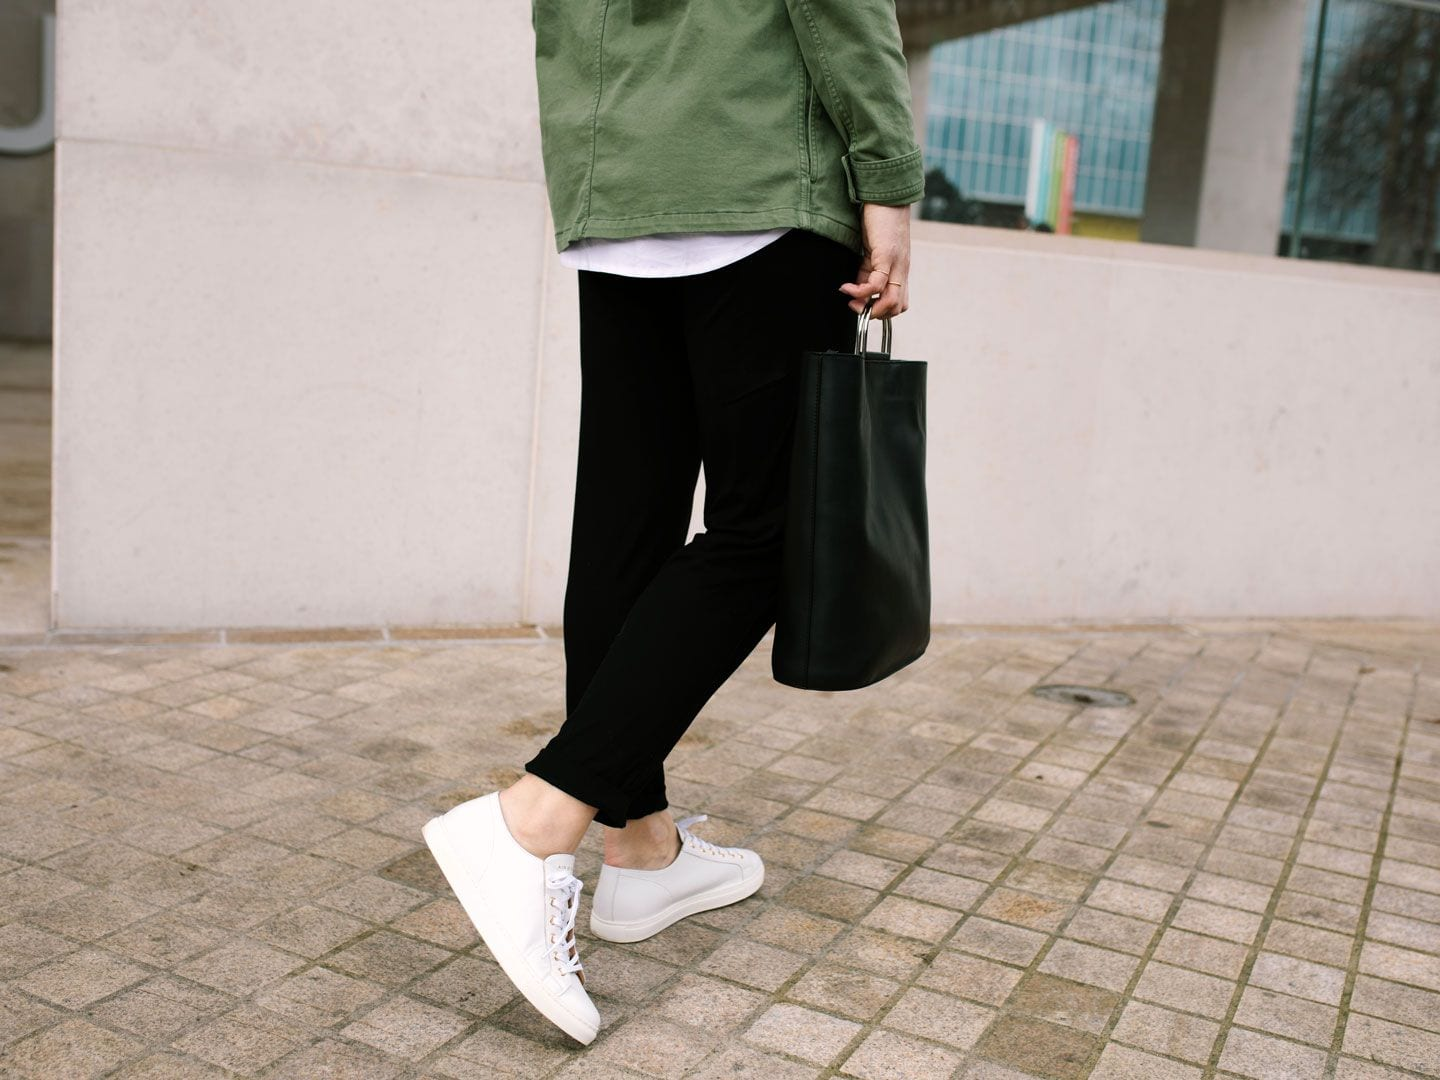 Baukjen Cargo Jacket, Jersey Trousers, White Shirt, Air & Grace White Trainers & PB 0110 Bag